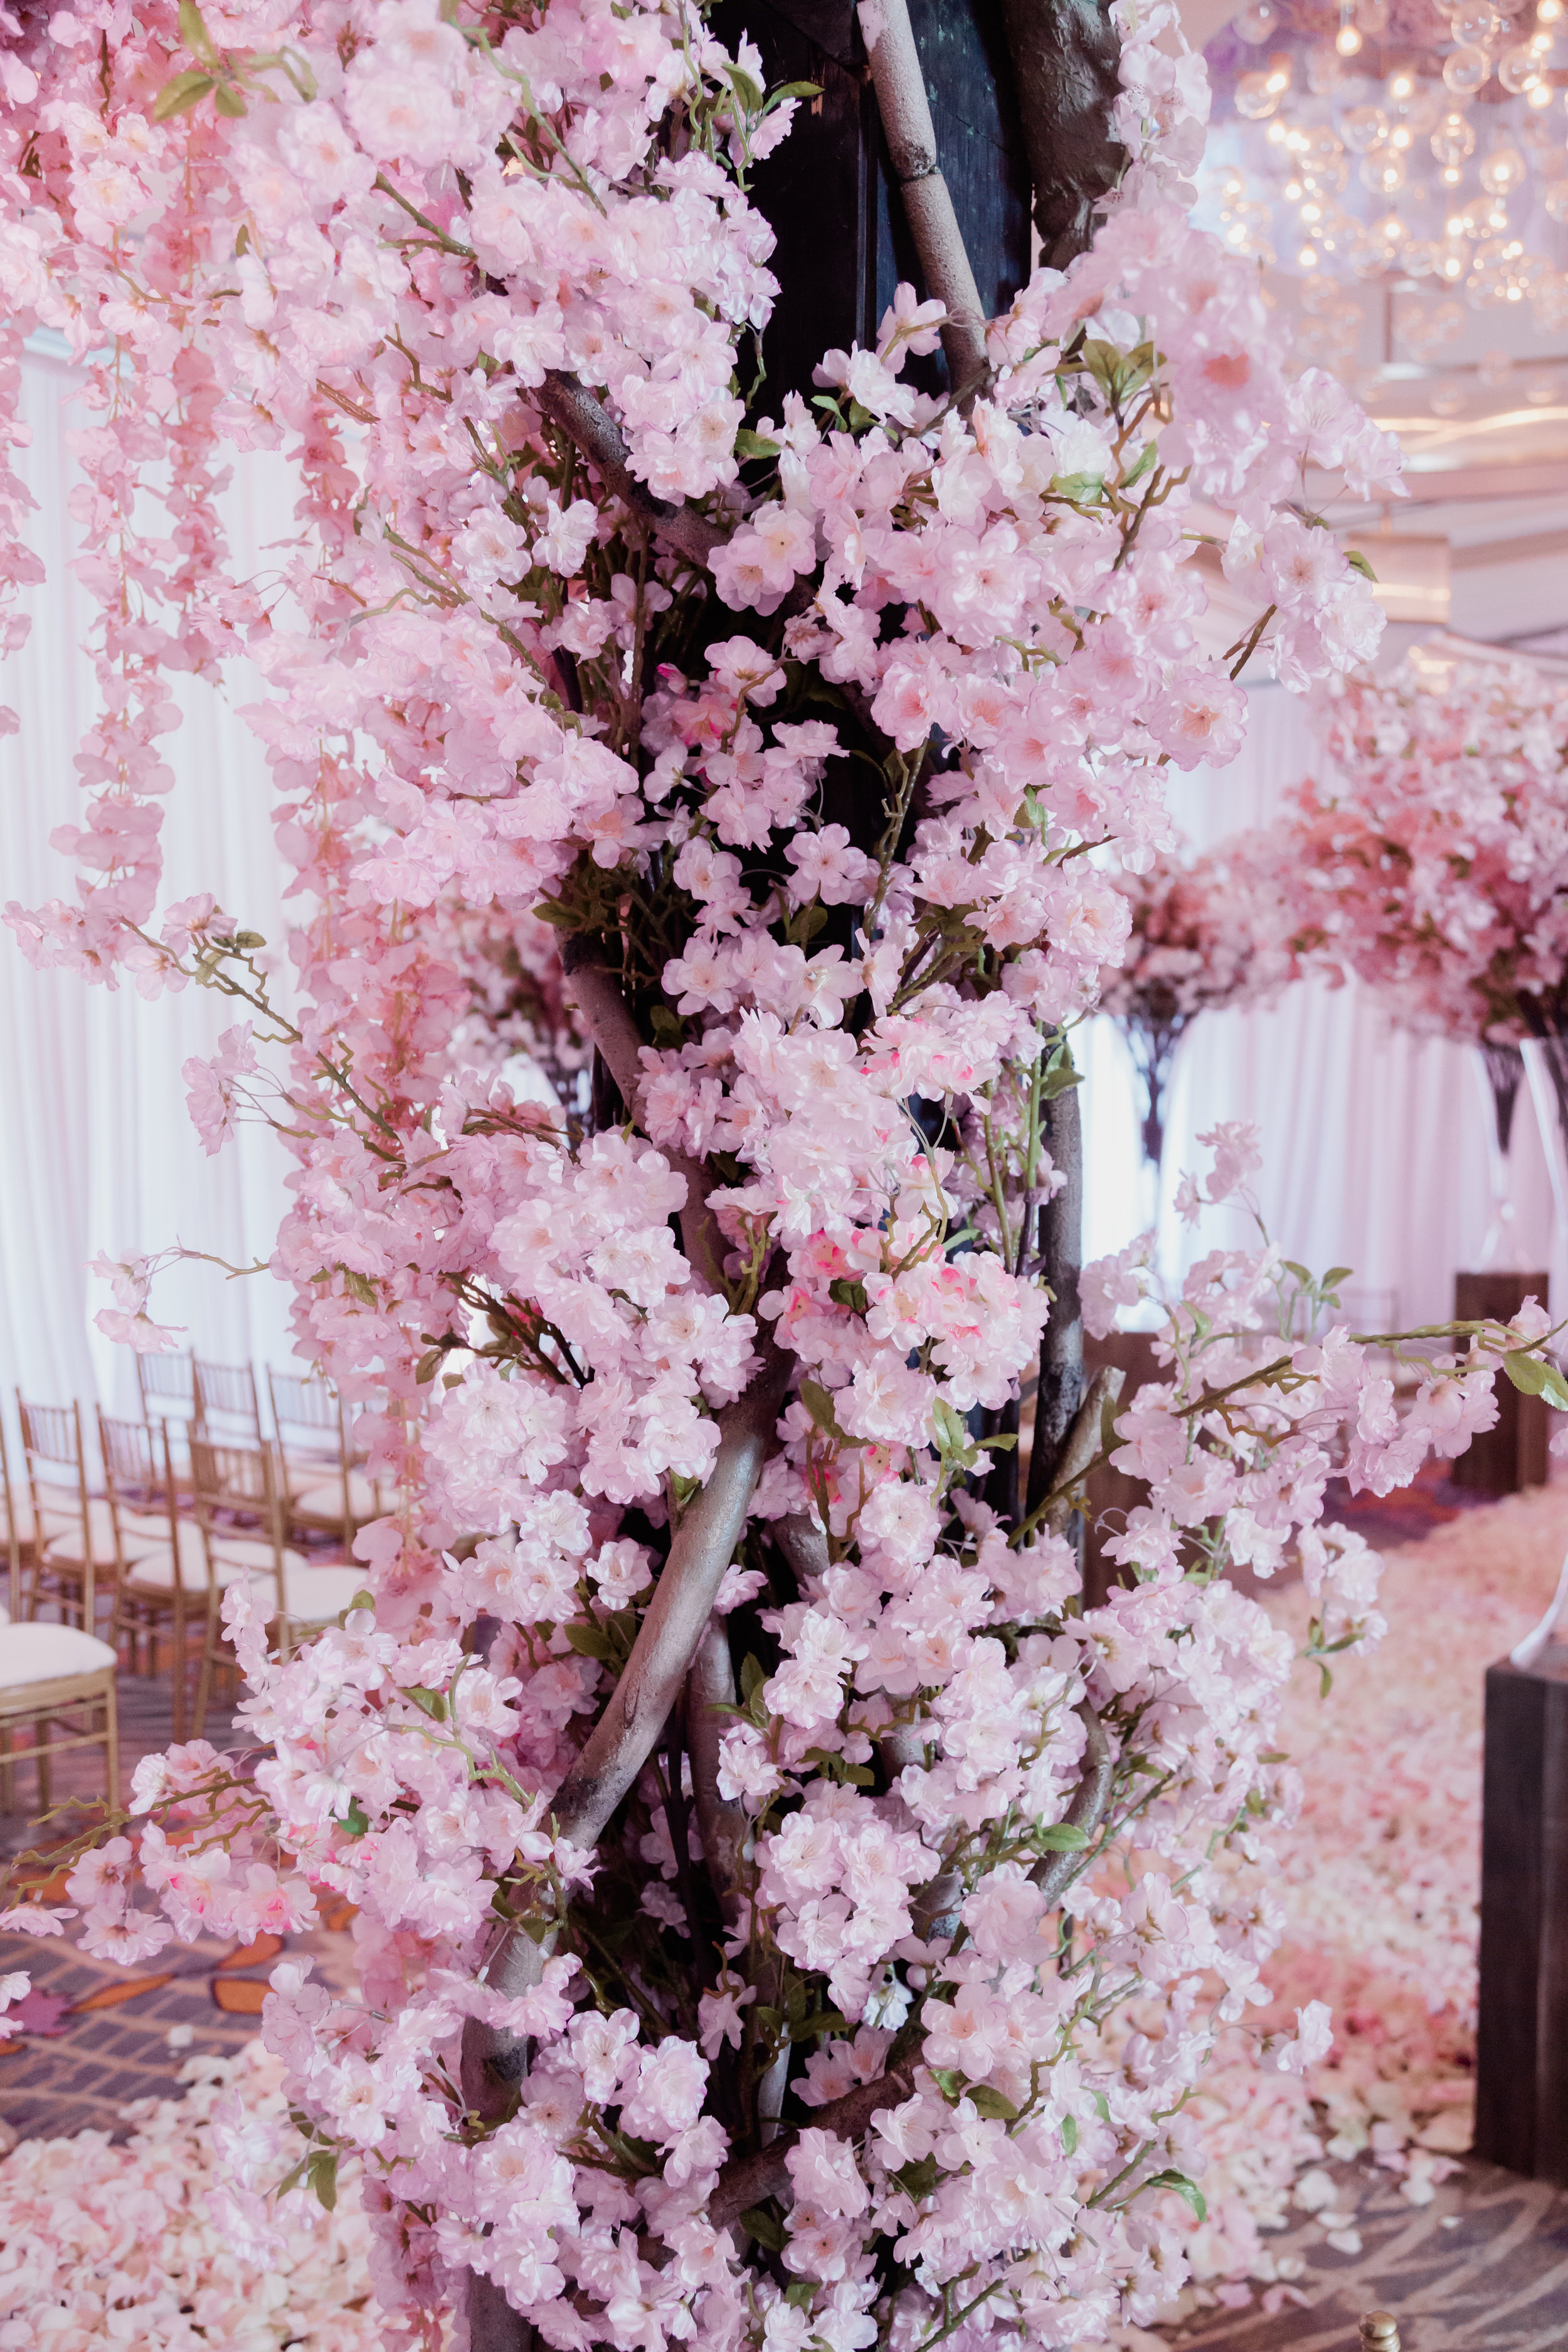 Cherry blossoms at a Las Vegas Wedding. Wedding Planning and Event Design by Andrea Eppolito www.andreaeppolitoevents.com. Photos by Adam Frazier.